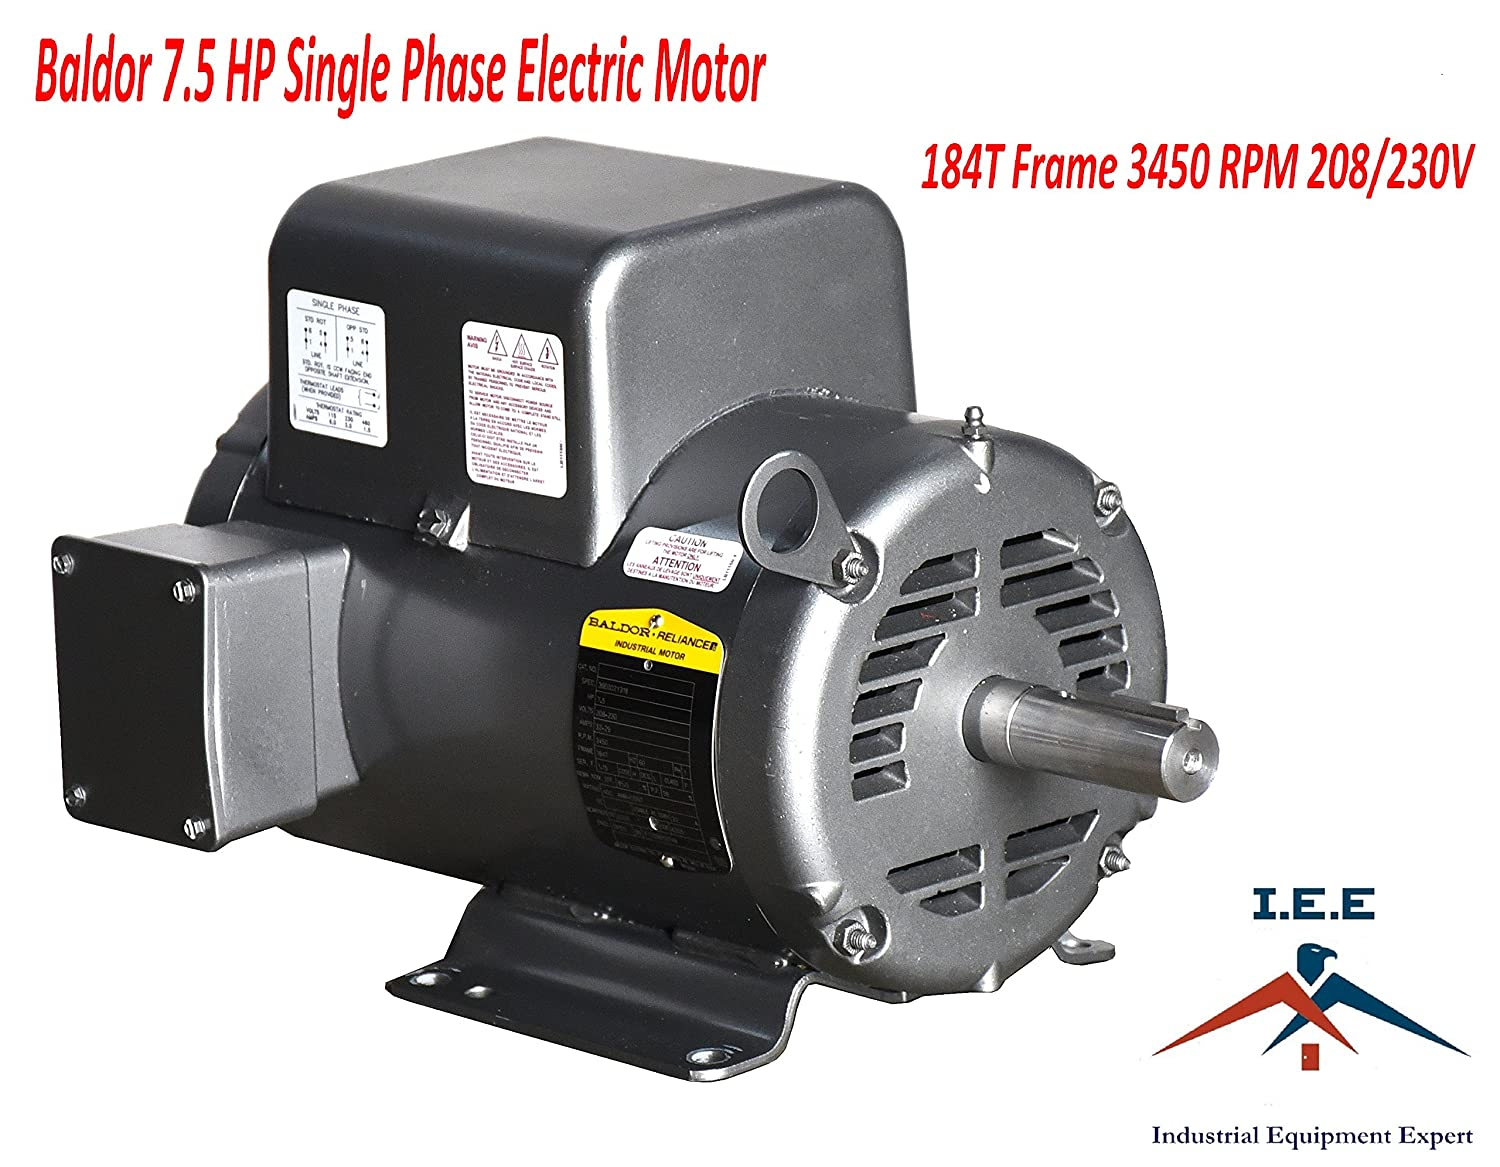 Baldor 7.5 Hp Electric Motor 3450 RPM 184 T Frame 1 Ph Single Phase 208/230  Volt - - Amazon.com